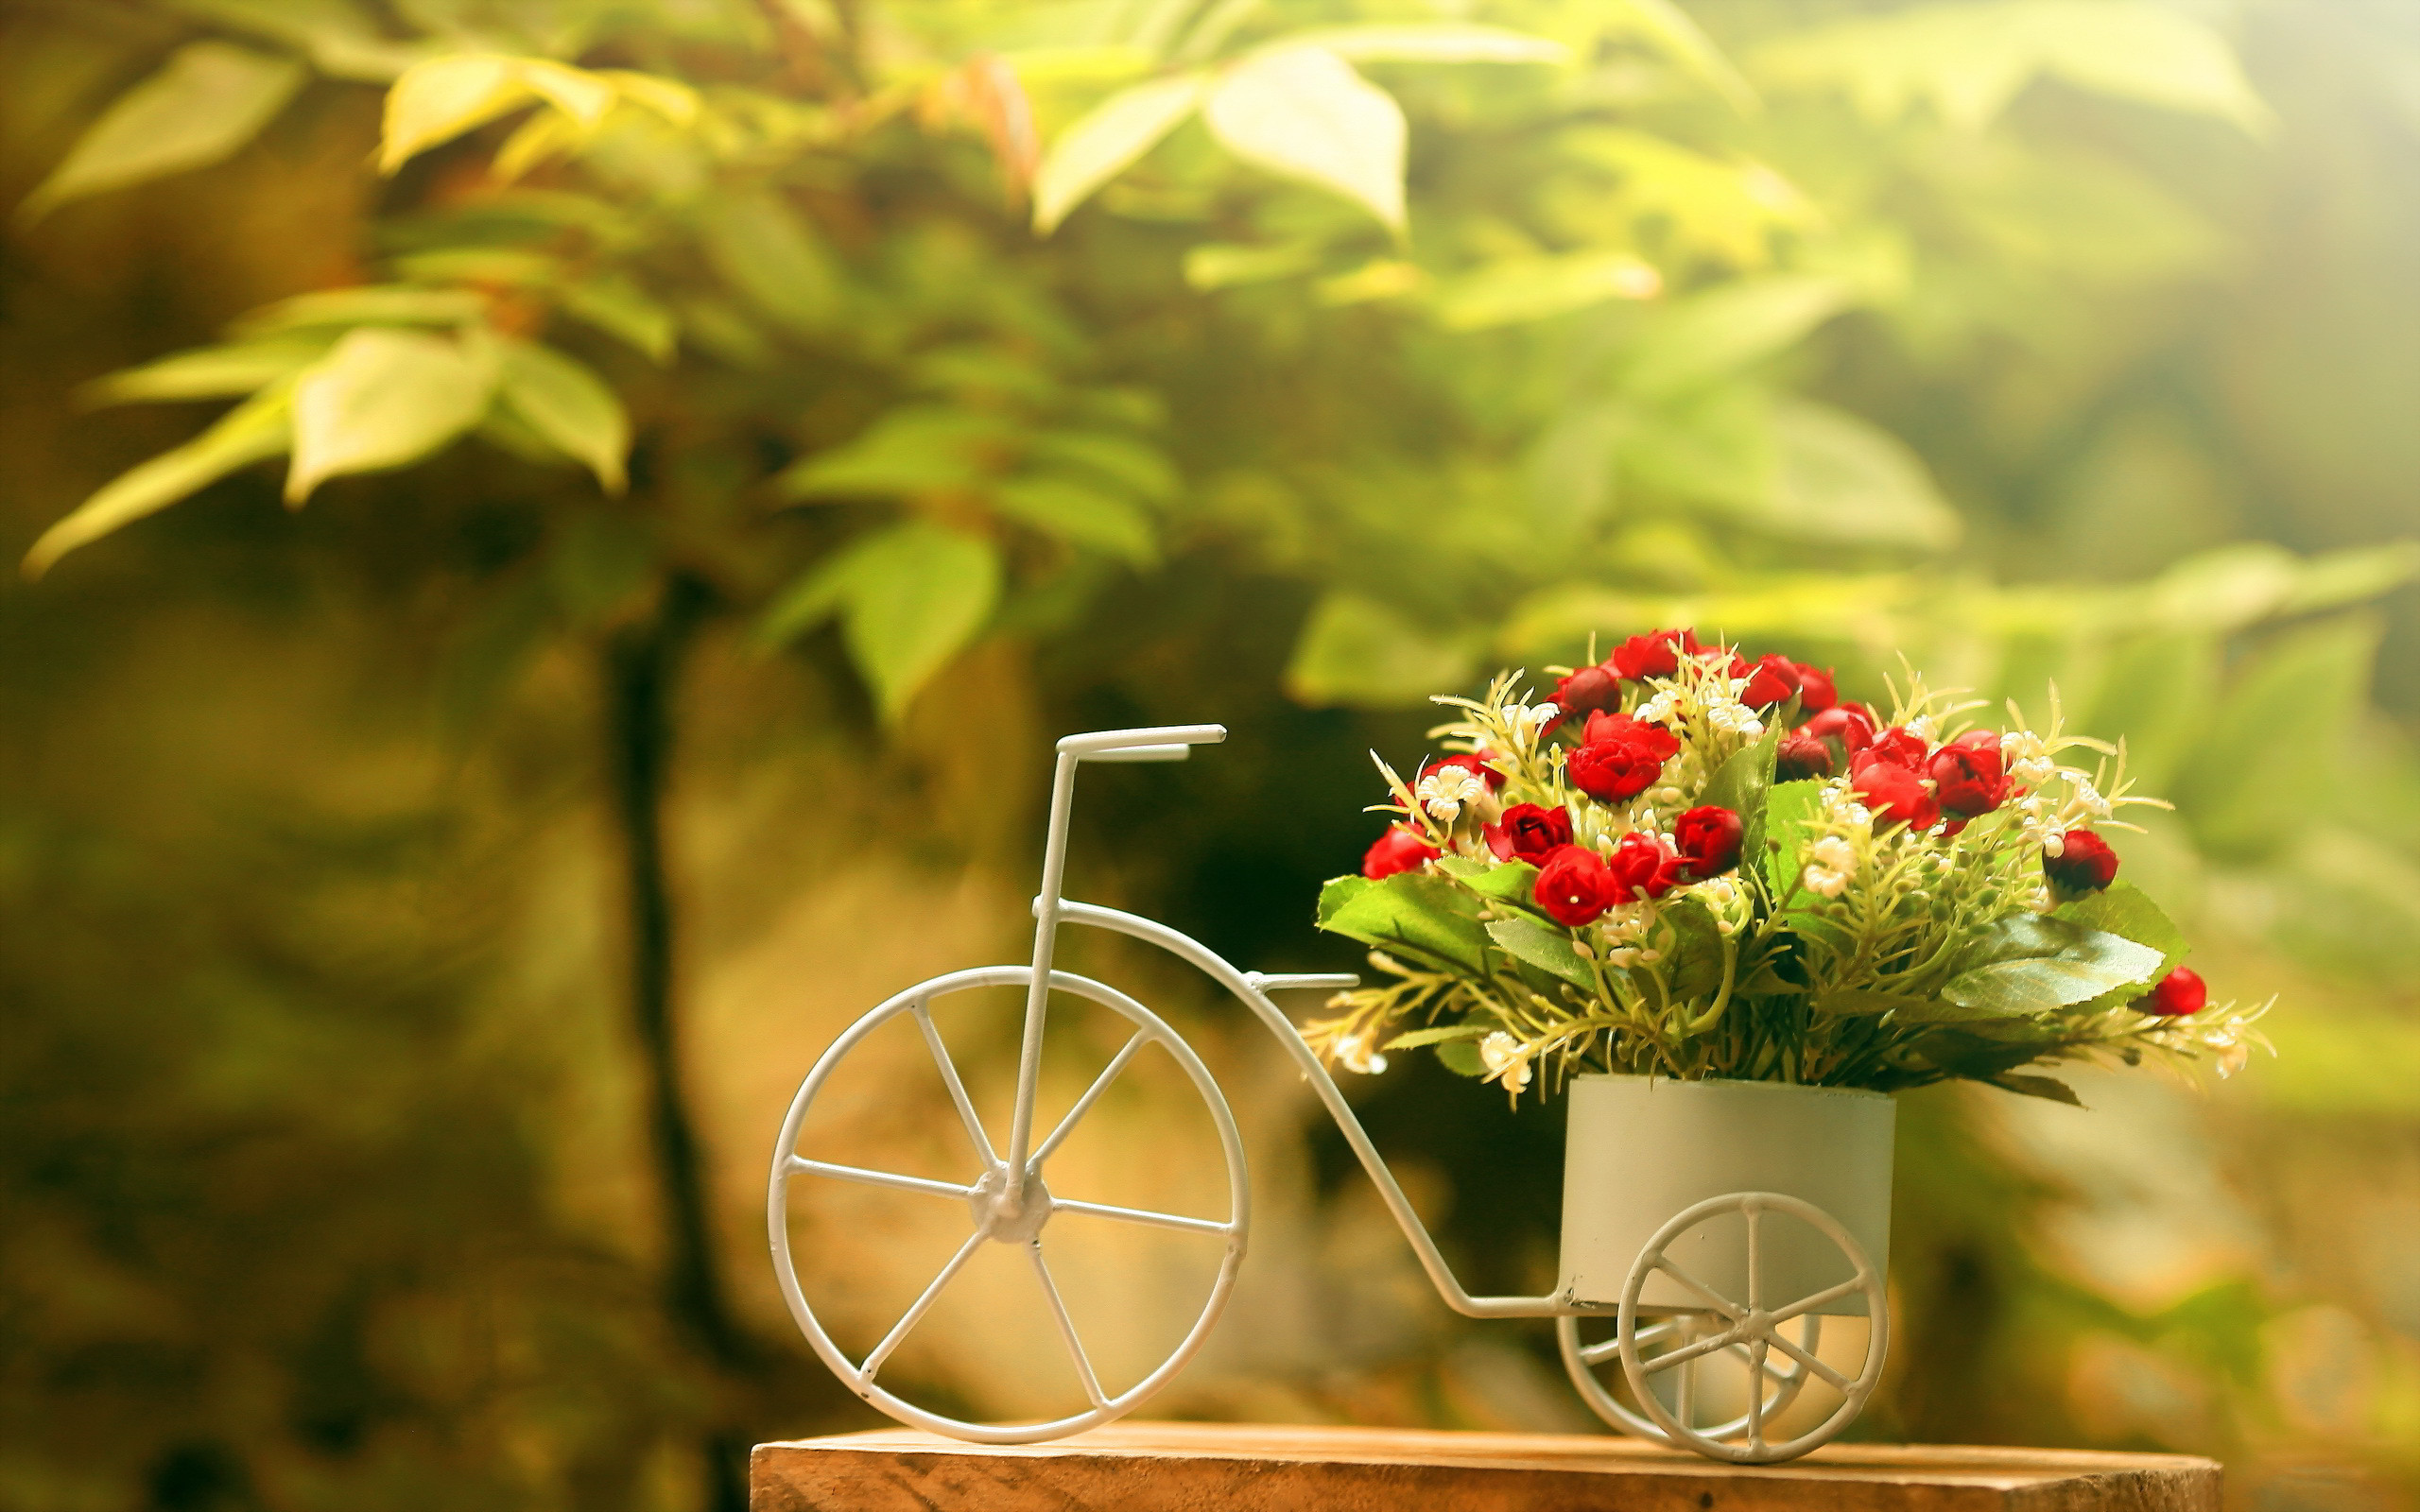 Pretty Flower Pot Wallpaper 42737 1680x1050 px